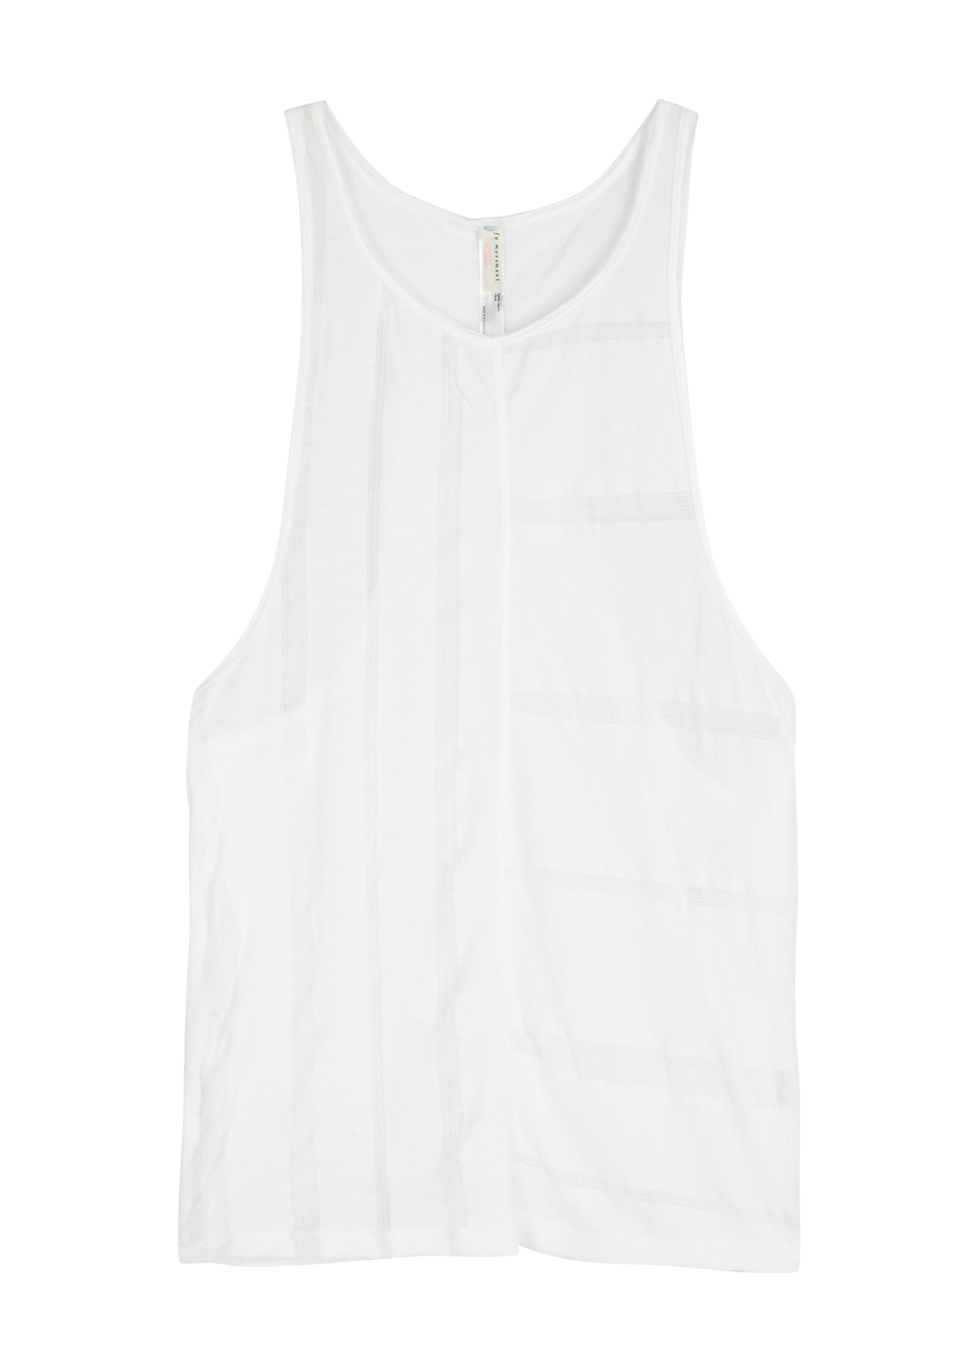 FREE PEOPLE MOVEMENT TOGETHER DISTRESSED JERSEY TANK